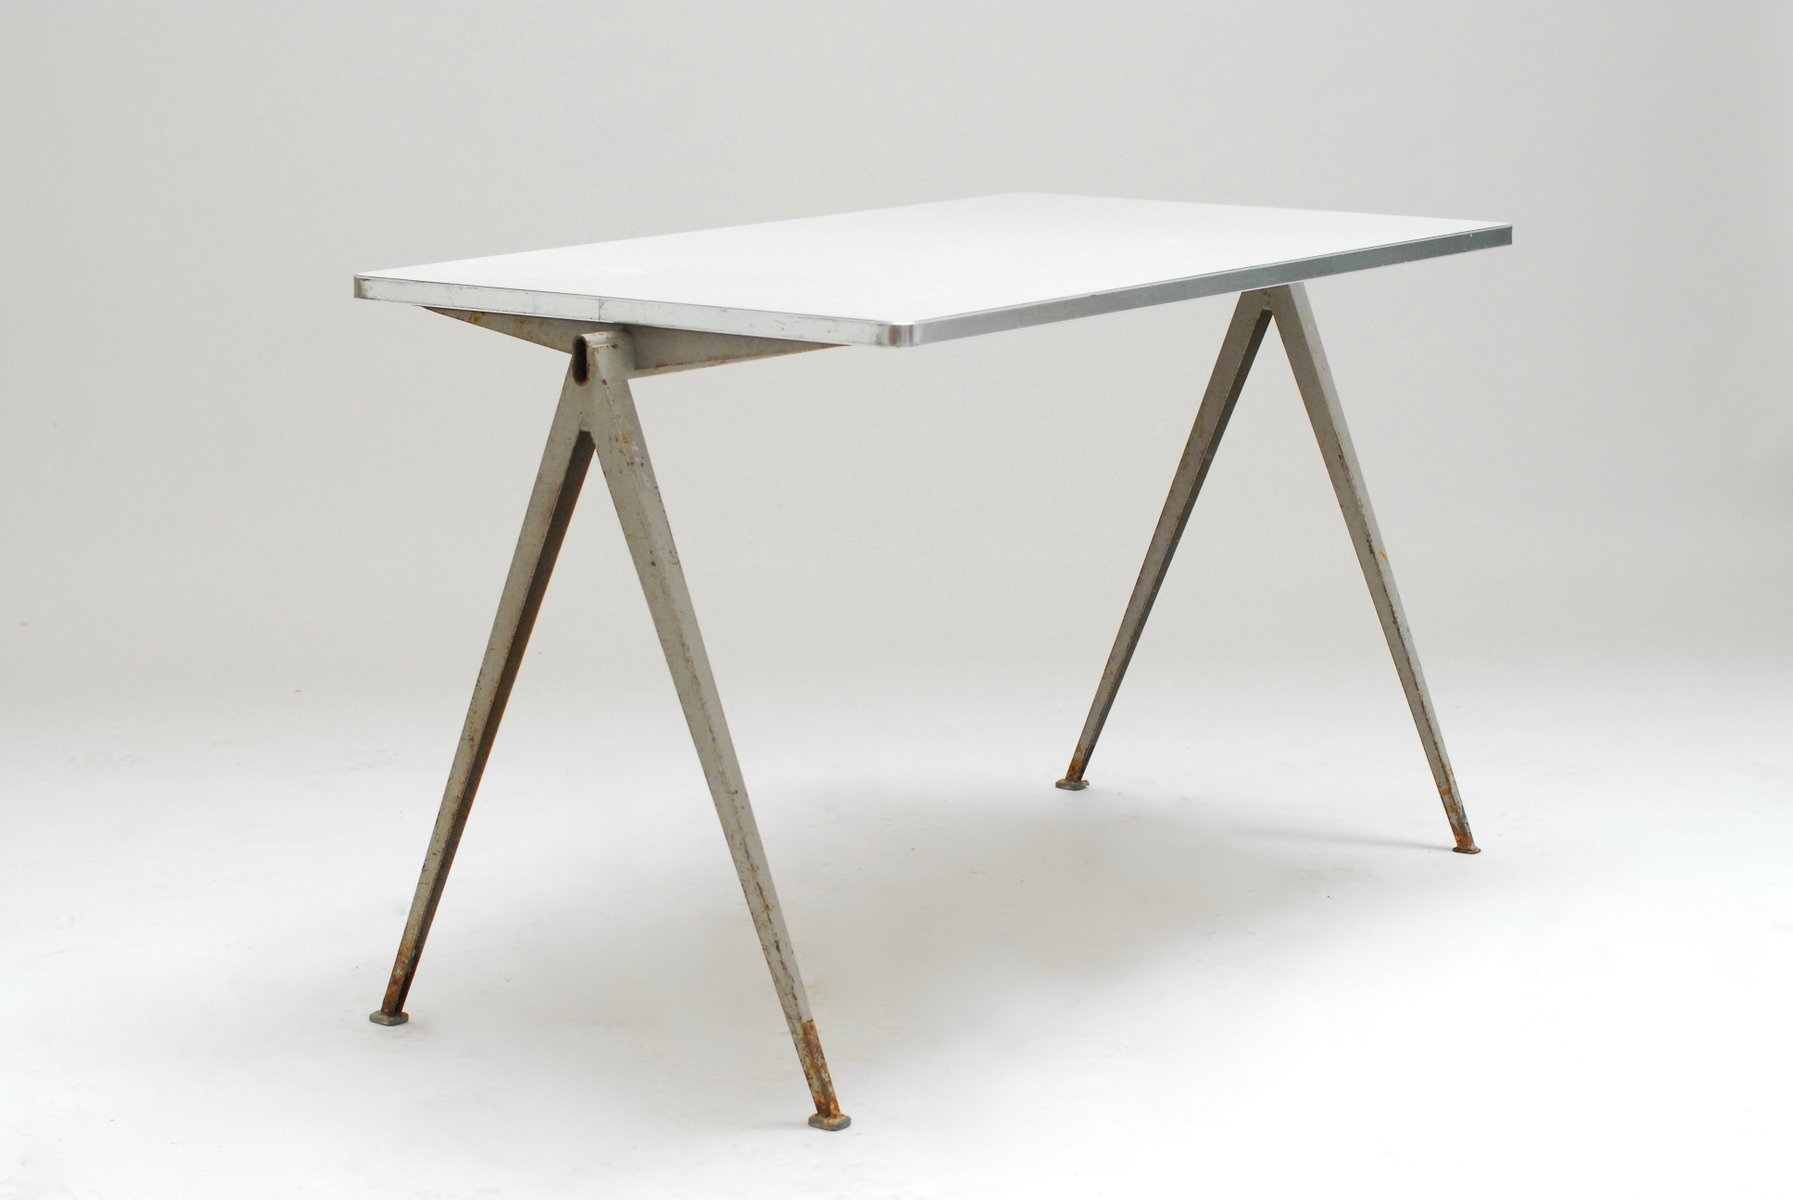 Pyramid Table by Wim Rietveld for Ahrend de Cirkel 1960 for sale